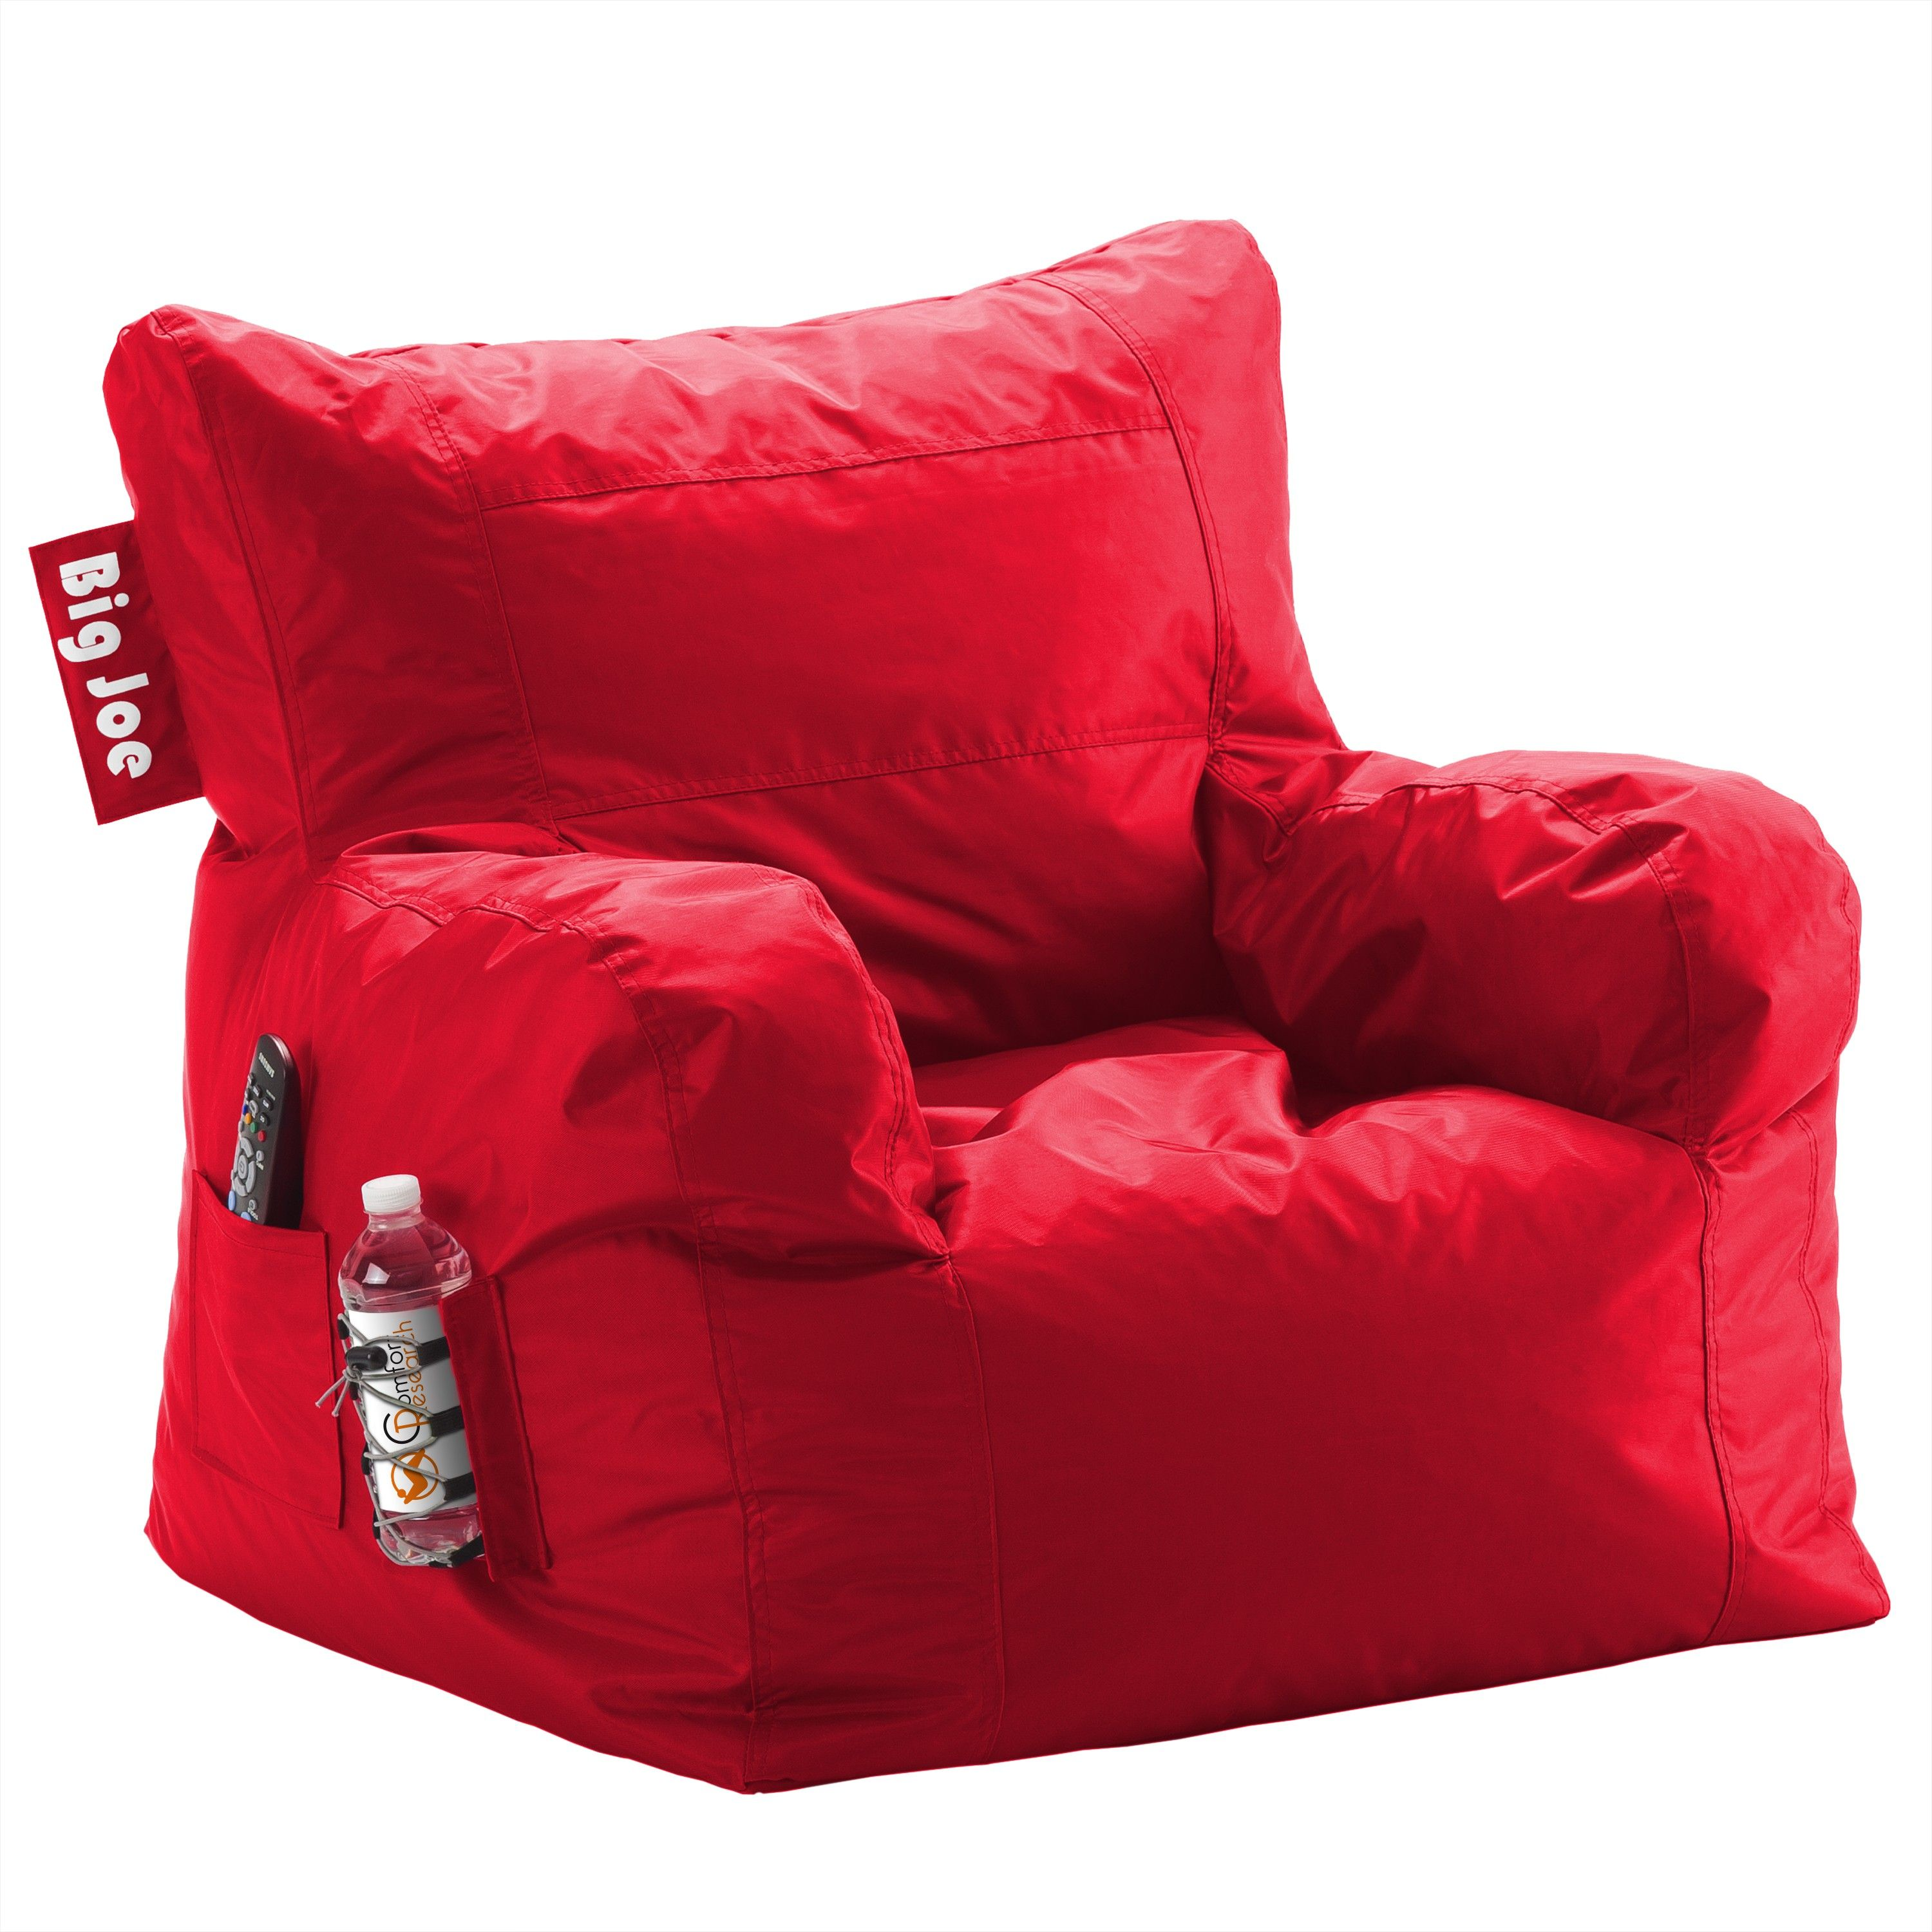 The Big Joe Dorm Bean Bag Chair Offers True Comfort When Its Time To Relax And